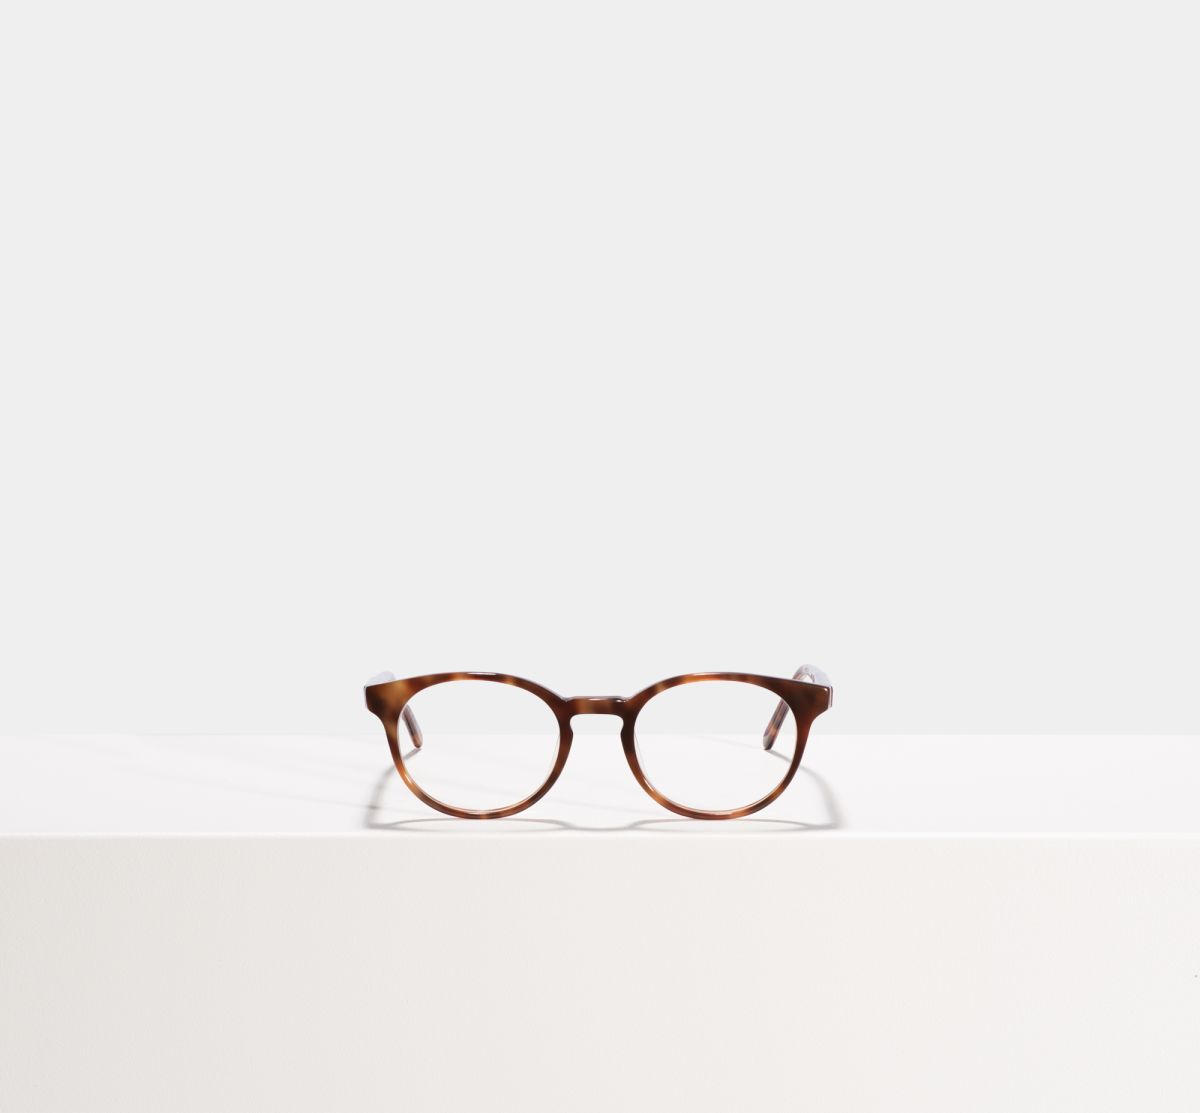 Steve round acetate glasses in Desert Spice by Ace & Tate